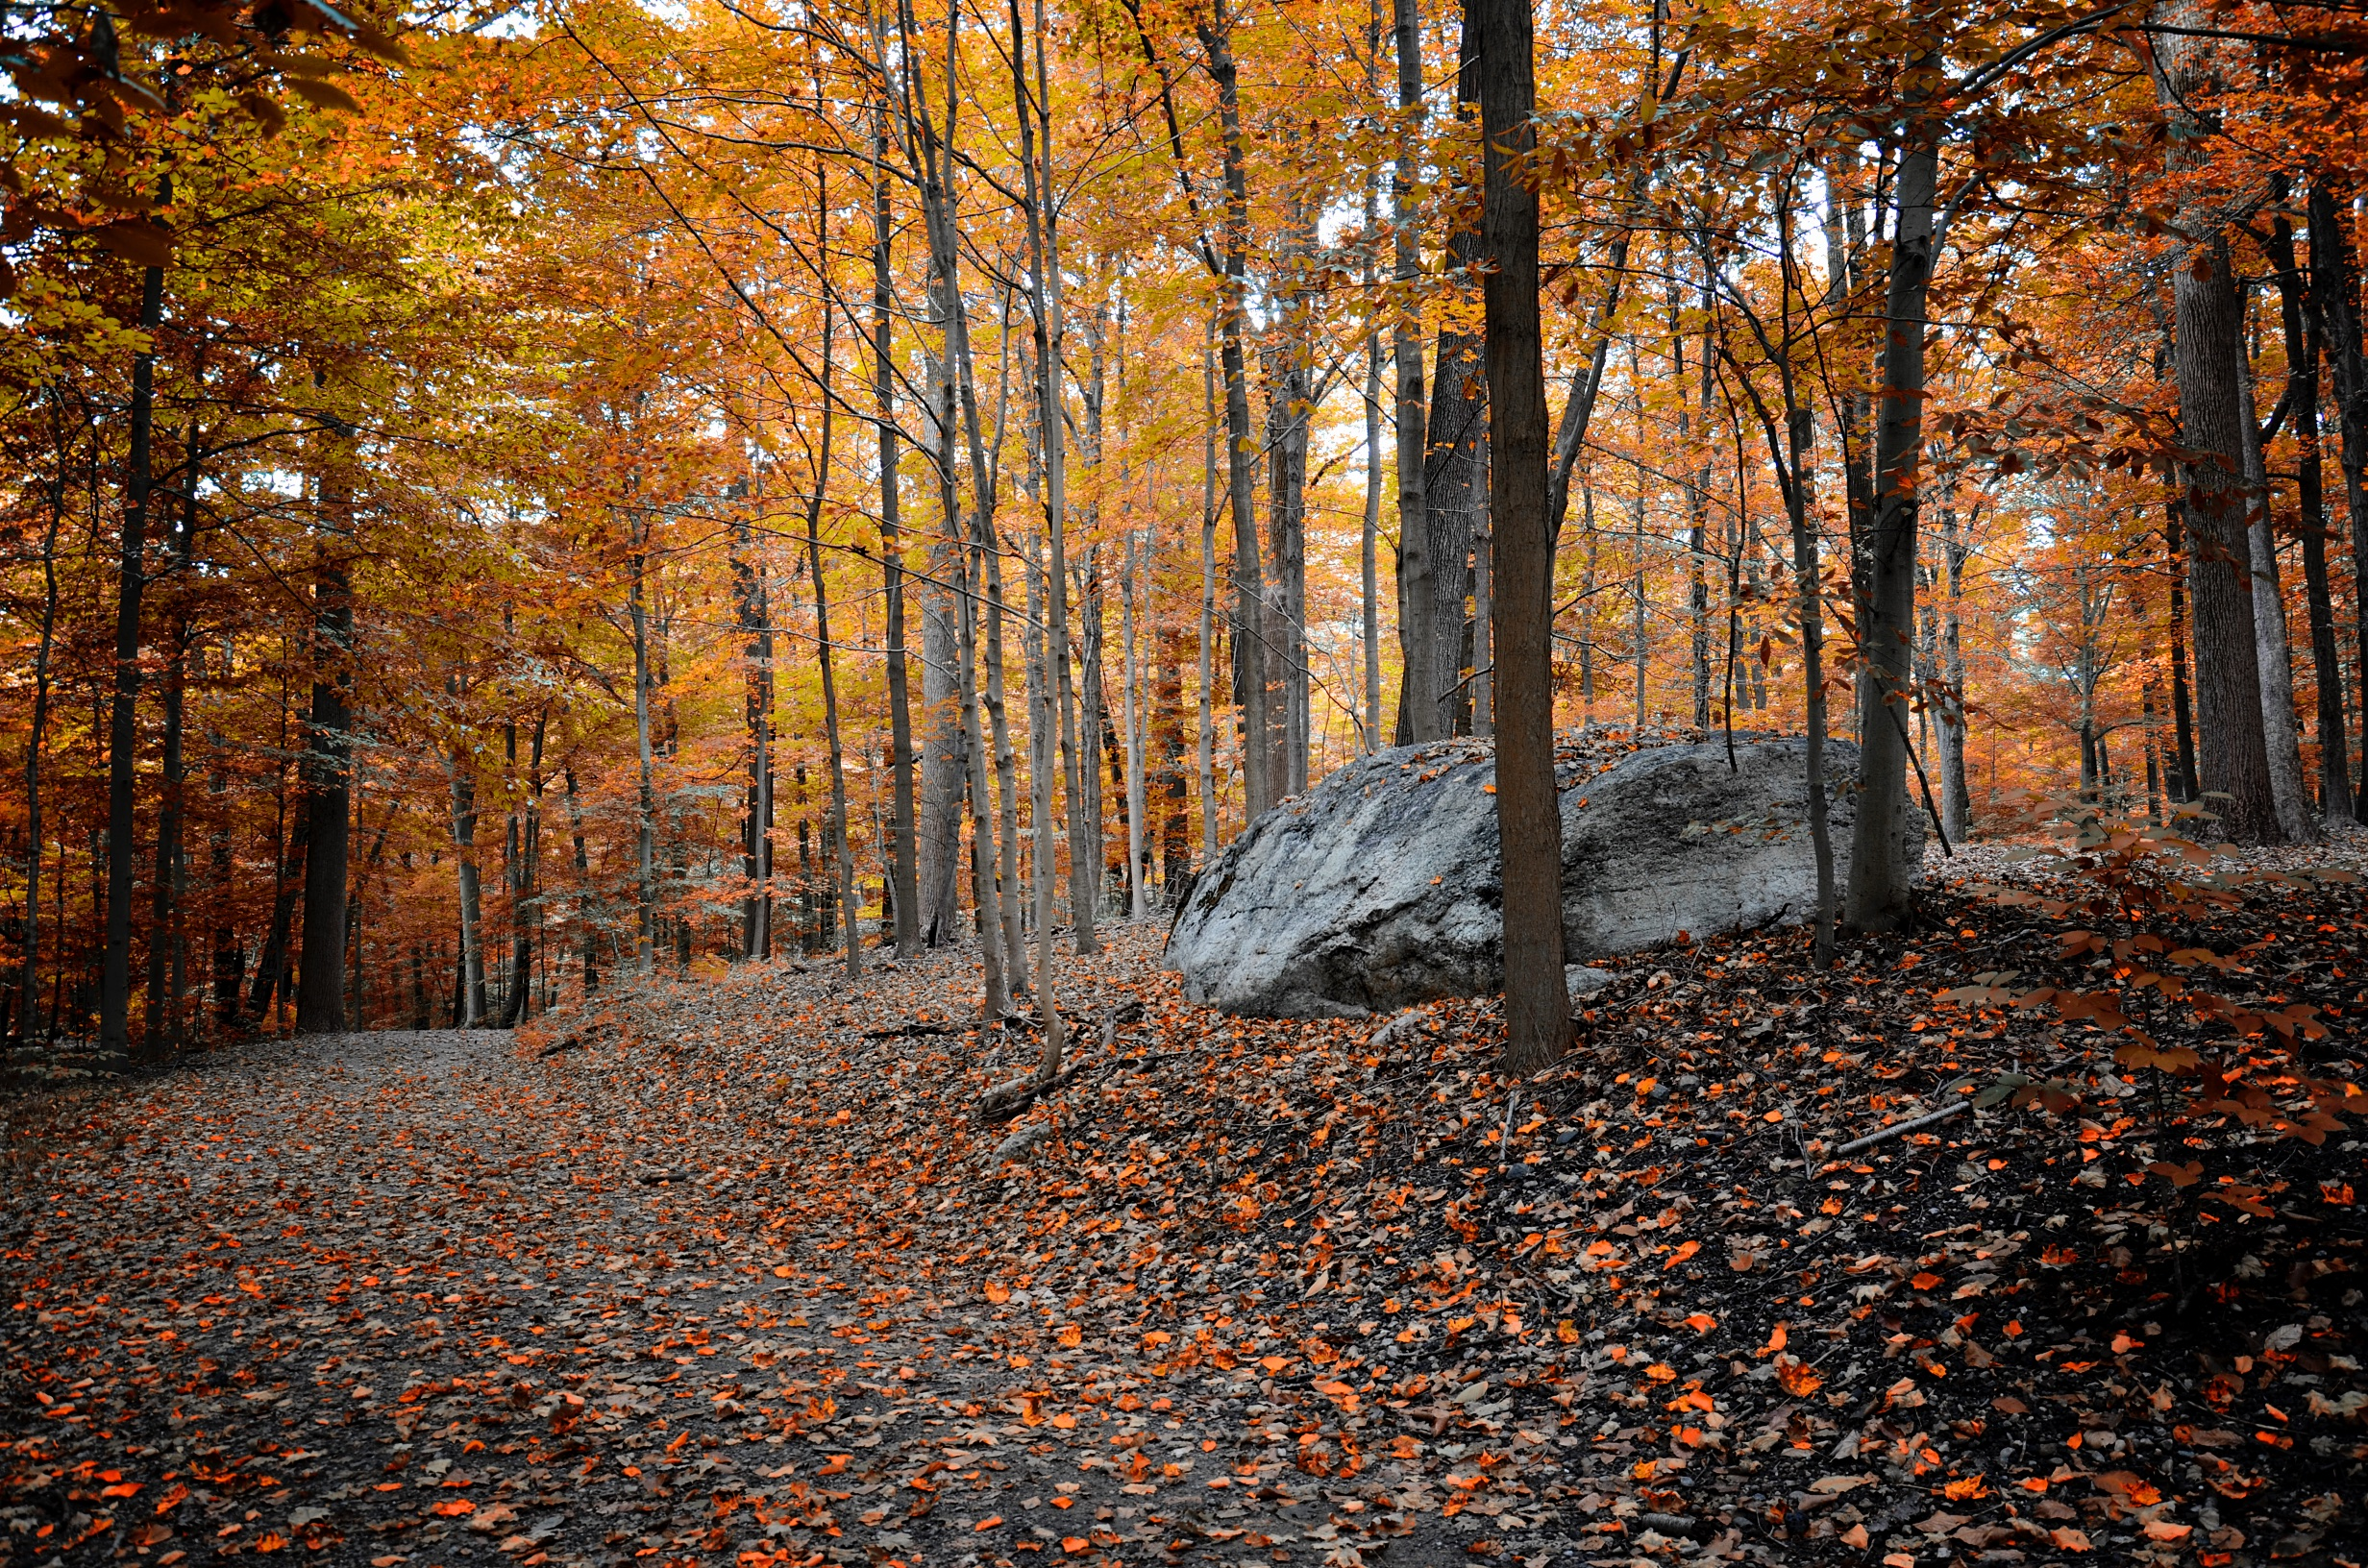 Witches Spring Trail in Rockefeller State Park Preserve, where it passes Spook Rock.